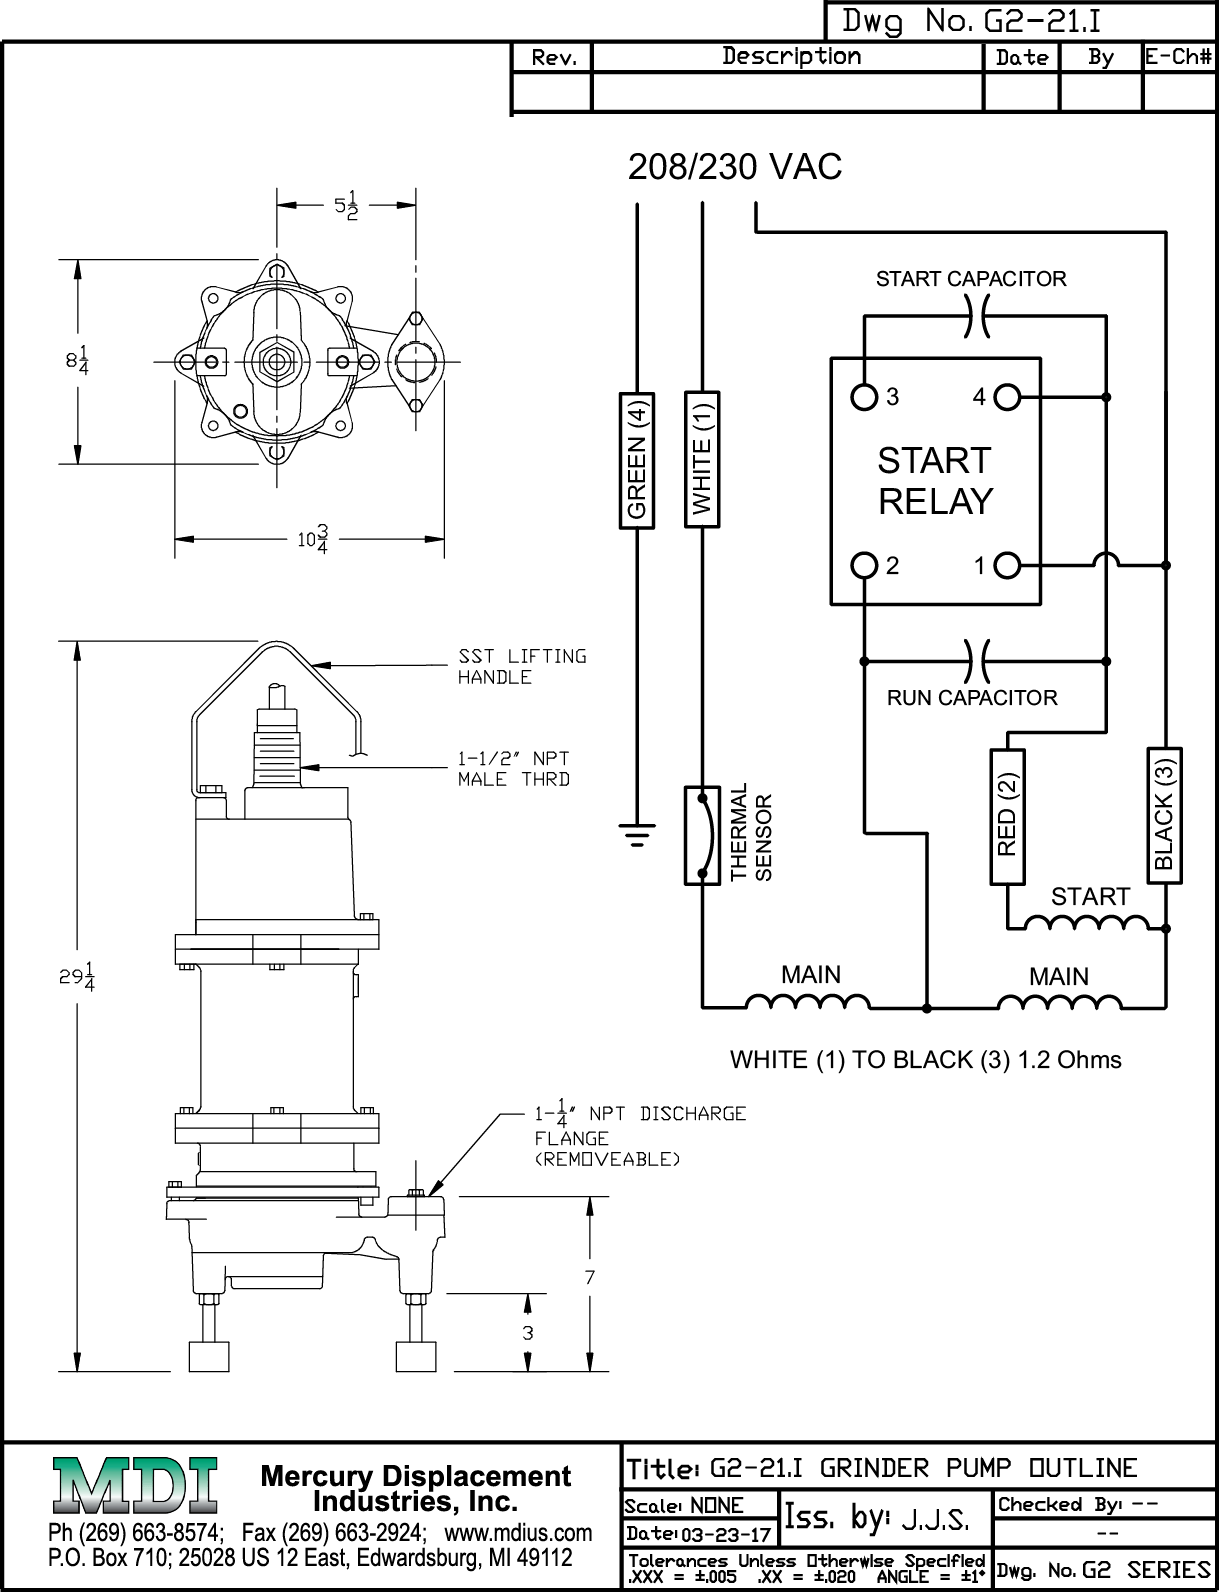 [EQHS_1162]  Grinder Pump - 2HP @ 230V - 68 gpm @ 95 foot head - Internal Start  Components - Heavy Duty Float Included | 208v Pump Wiring Diagram |  | Mercury Displacement Industries